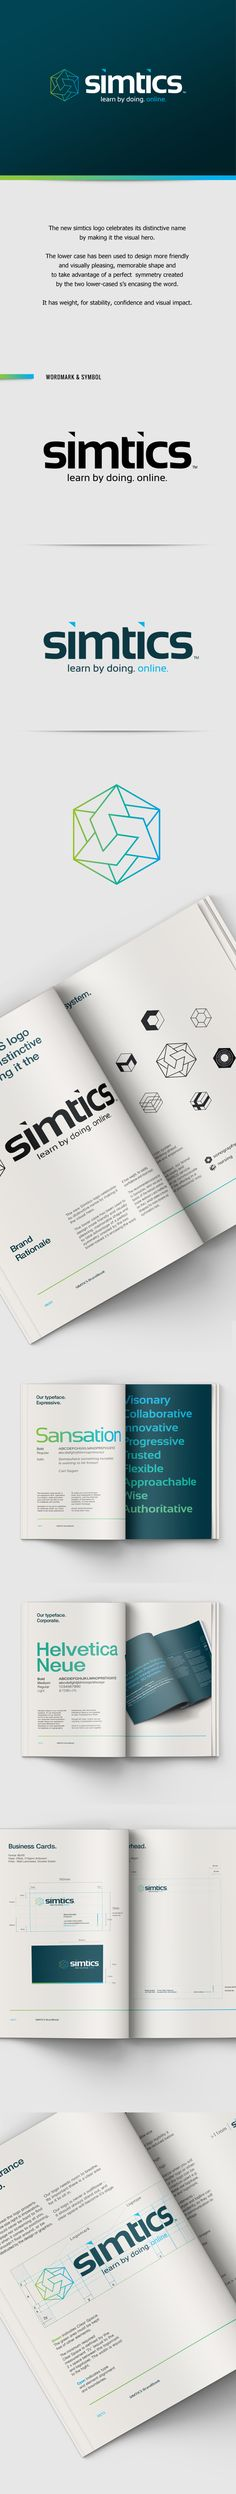 simtics by Alicja Murphy, via Behance